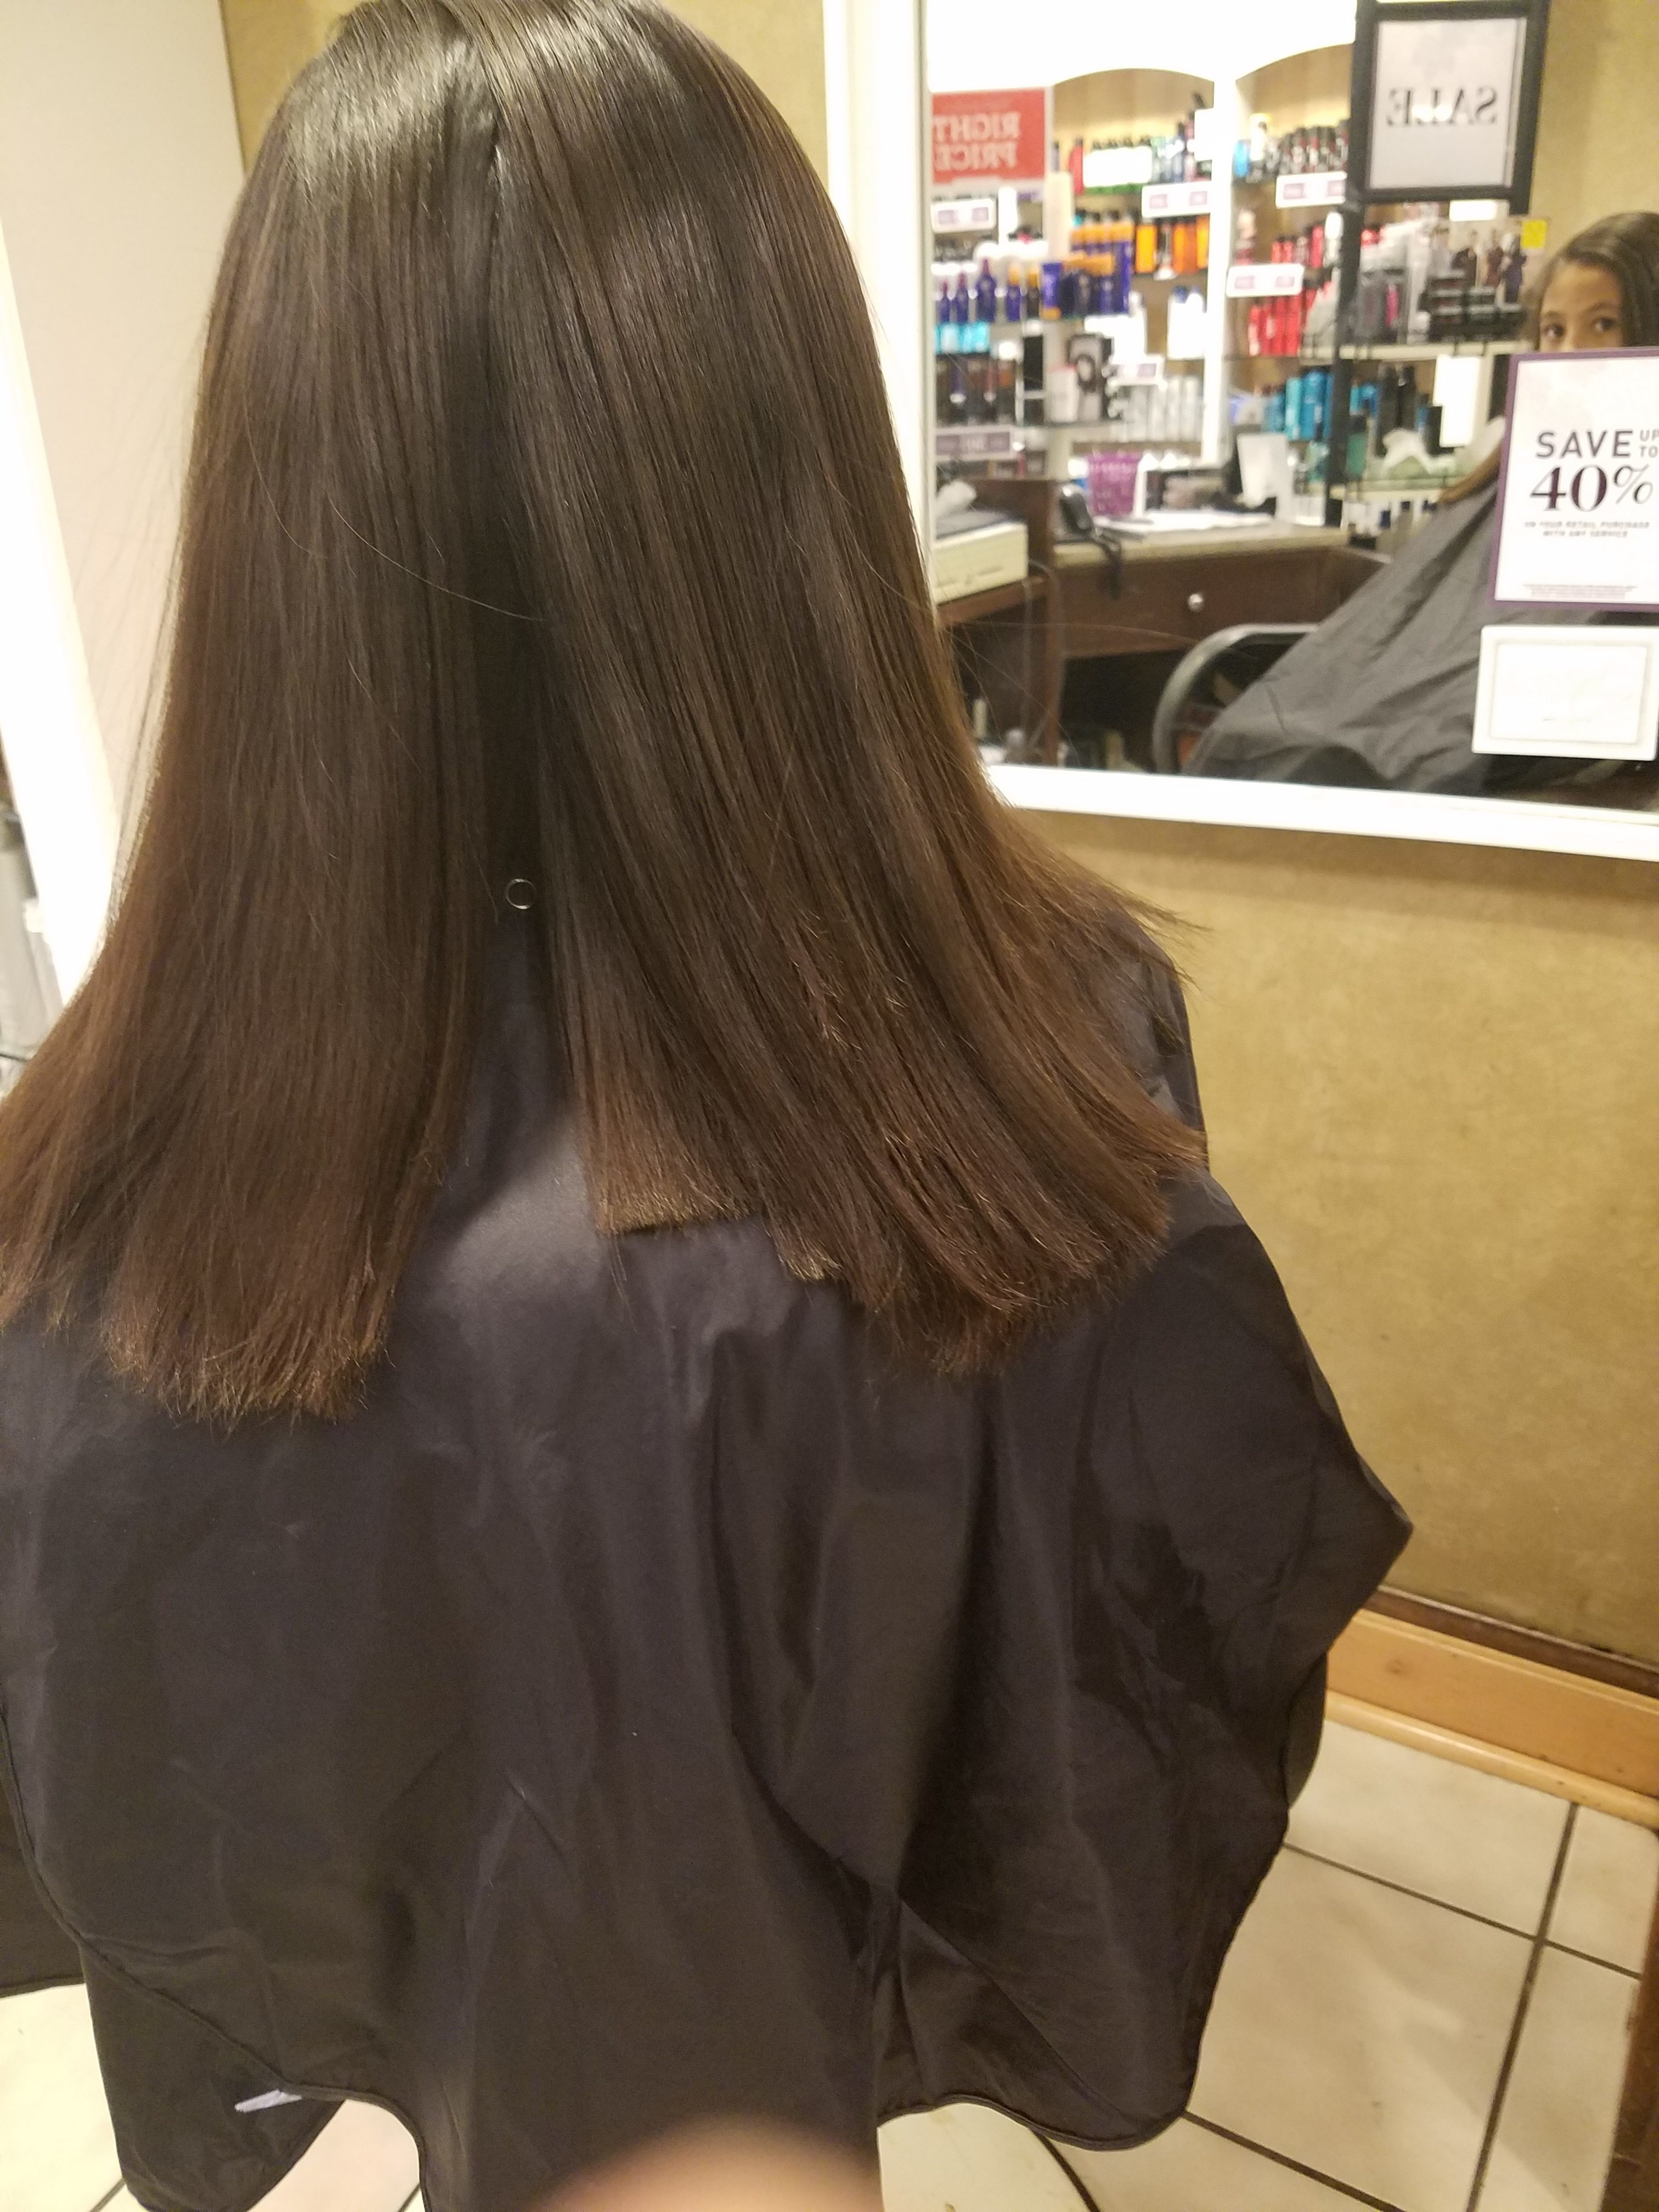 smartstyle haircut prices great salon hair style top 184 complaints and 5510